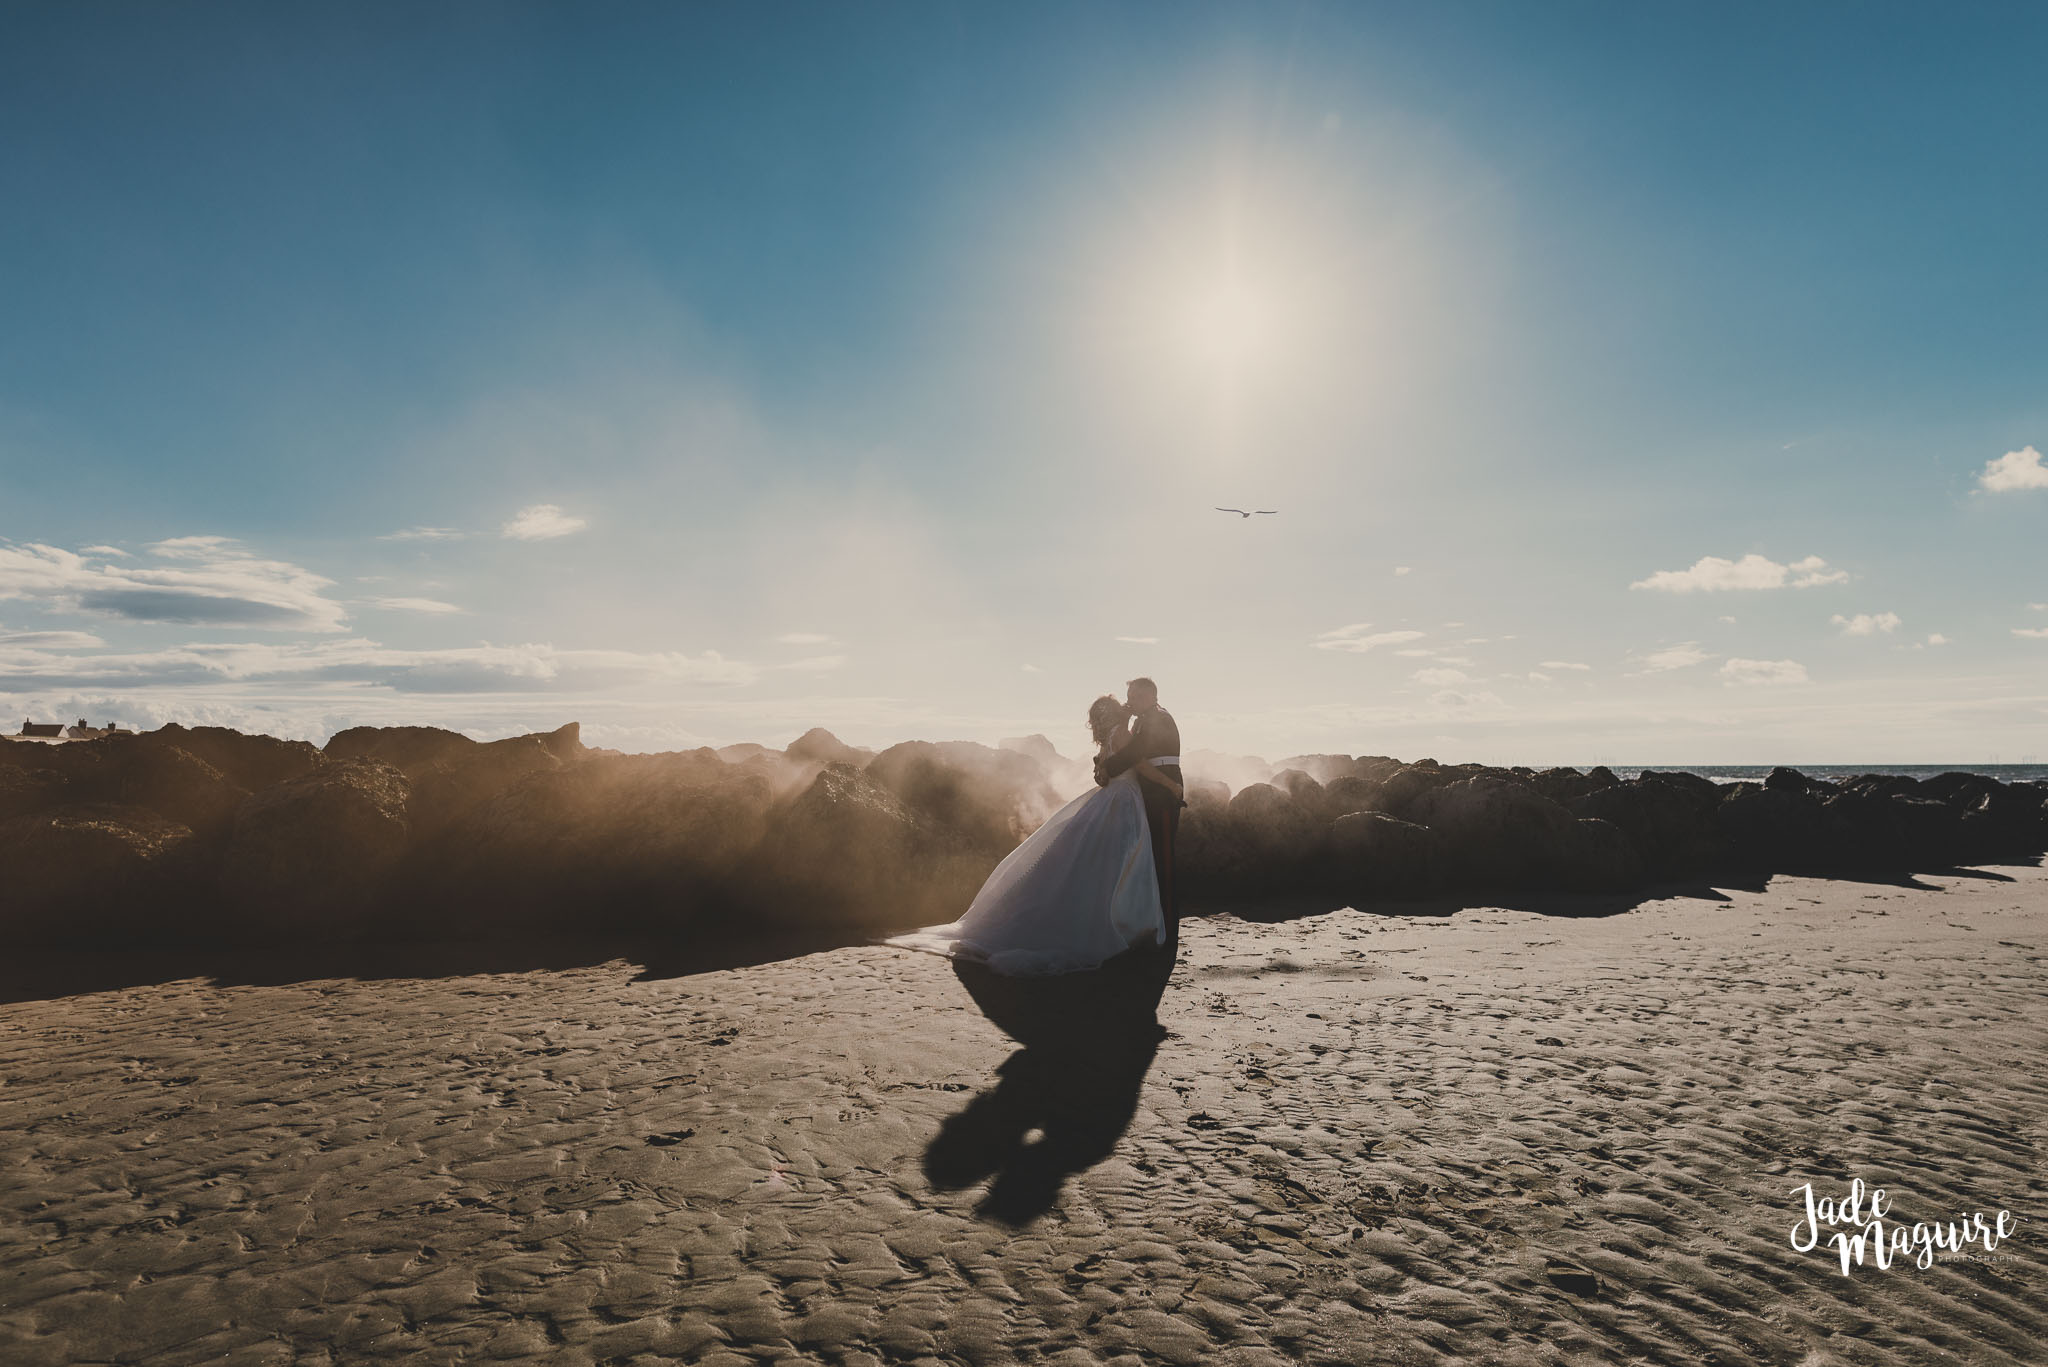 Elisha and Andrew - a Military beach wedding - This woman is absolutely Fan-bloody-tastic, her work is absolutely stunning and is such a lovely person, my new hubs and I can't thank you enough Jade - roll on my photoshoot.